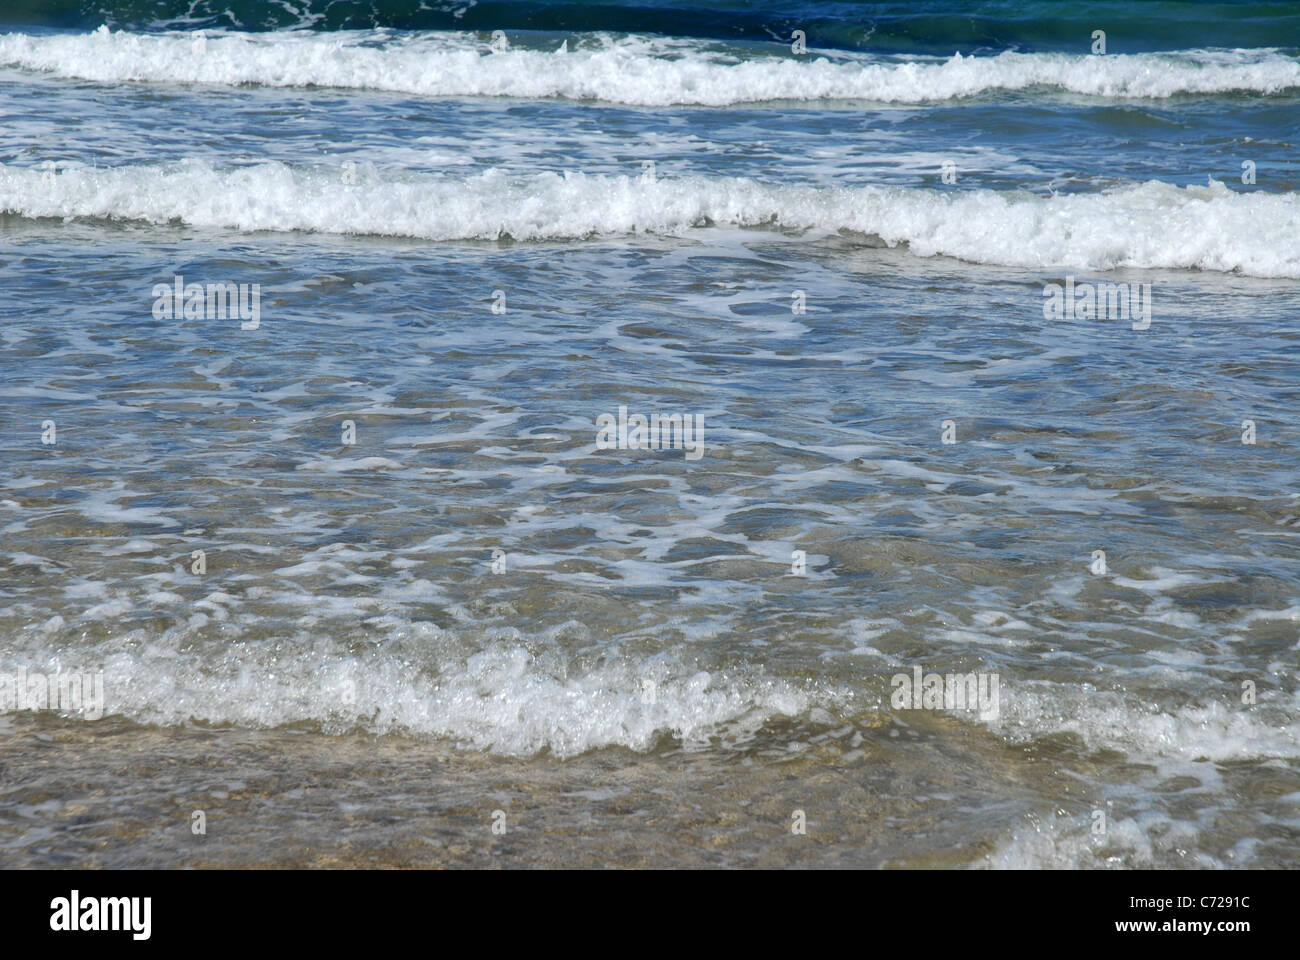 waves lapping beach, Florence Bay, Magnetic Island, Queensland, Australia - Stock Image